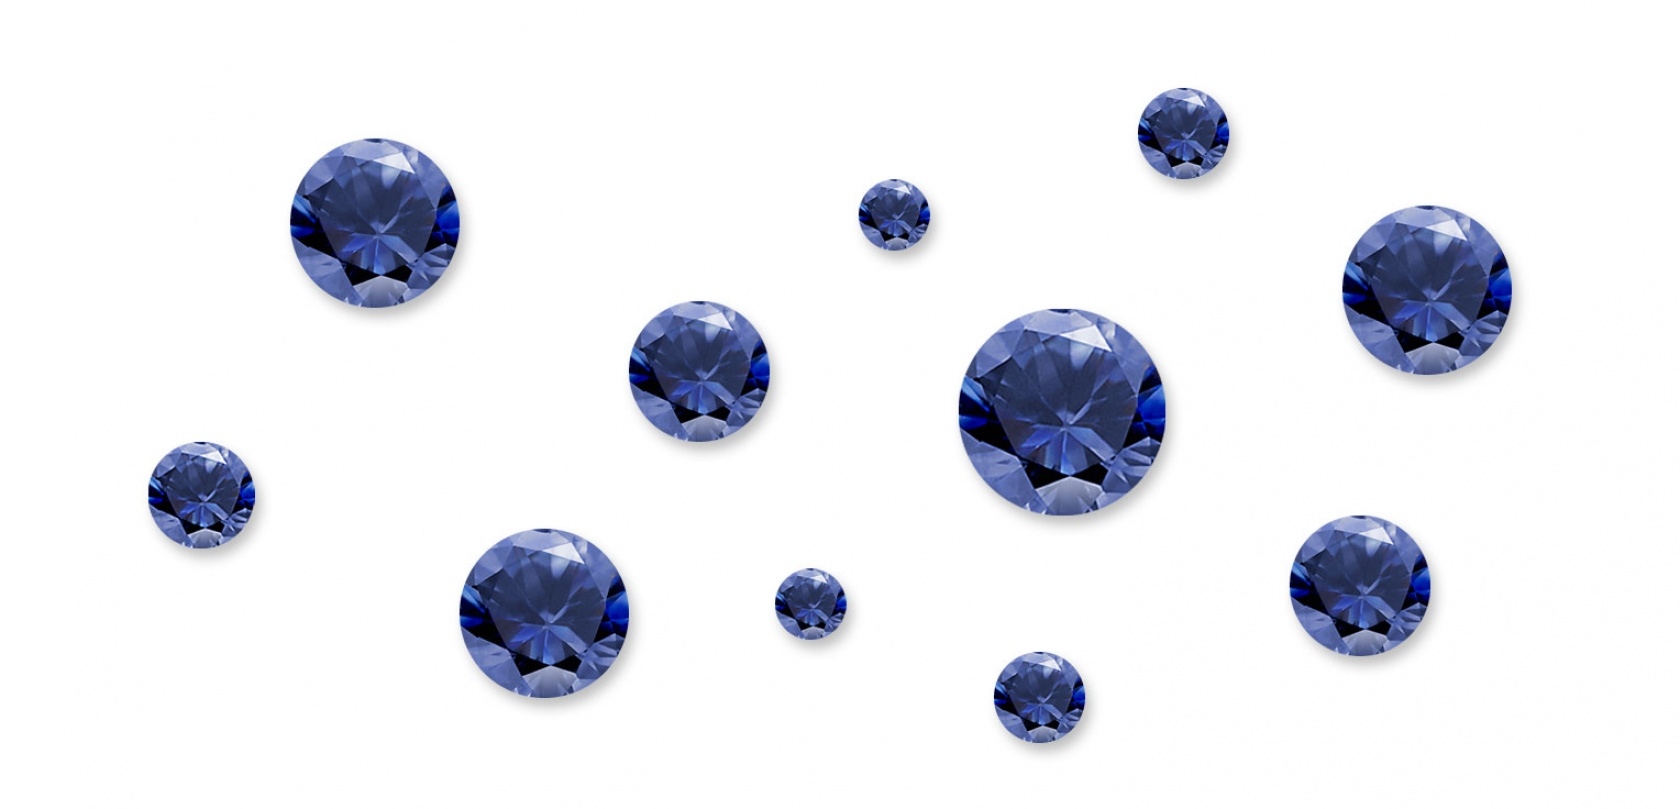 About Sapphires